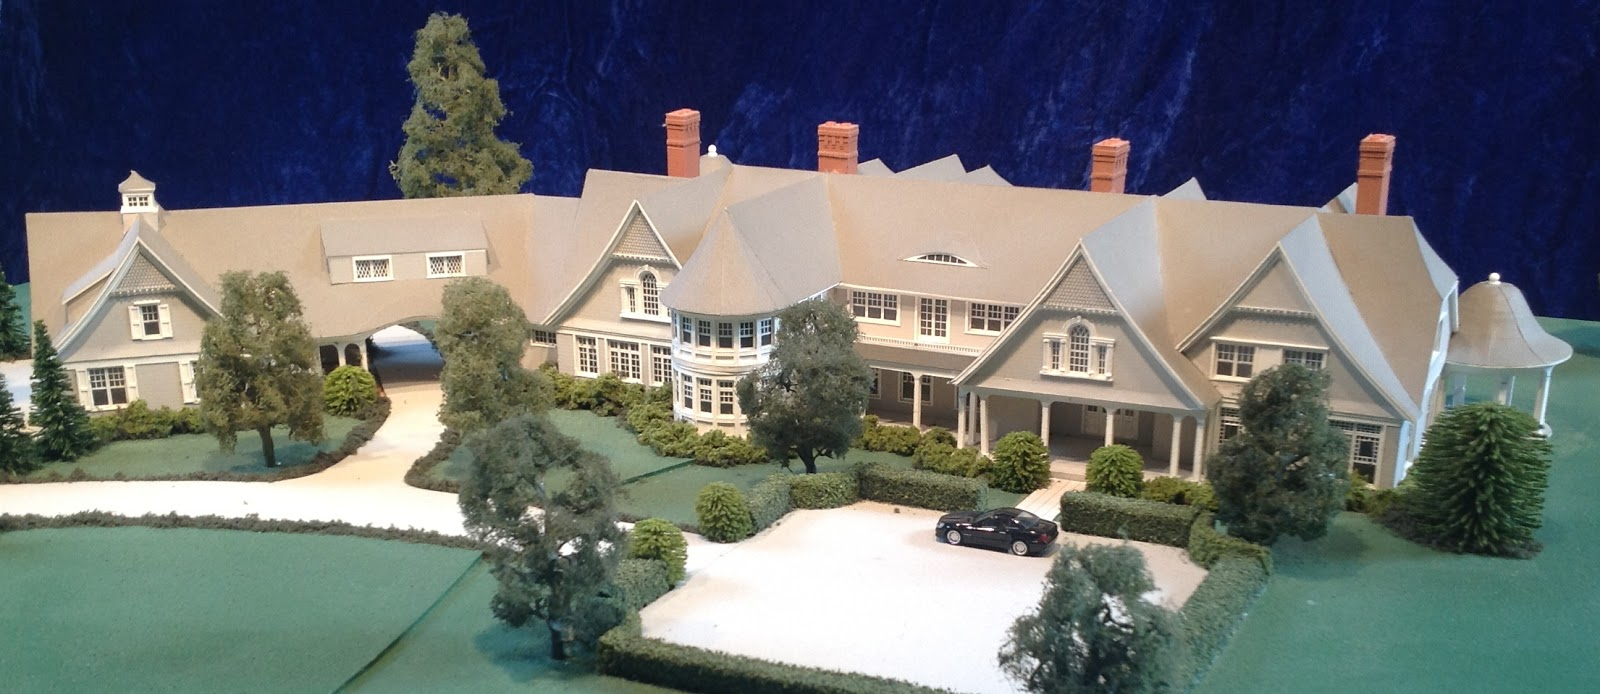 Gary lawrance architect and model maker featured in for Wall street journal mansion